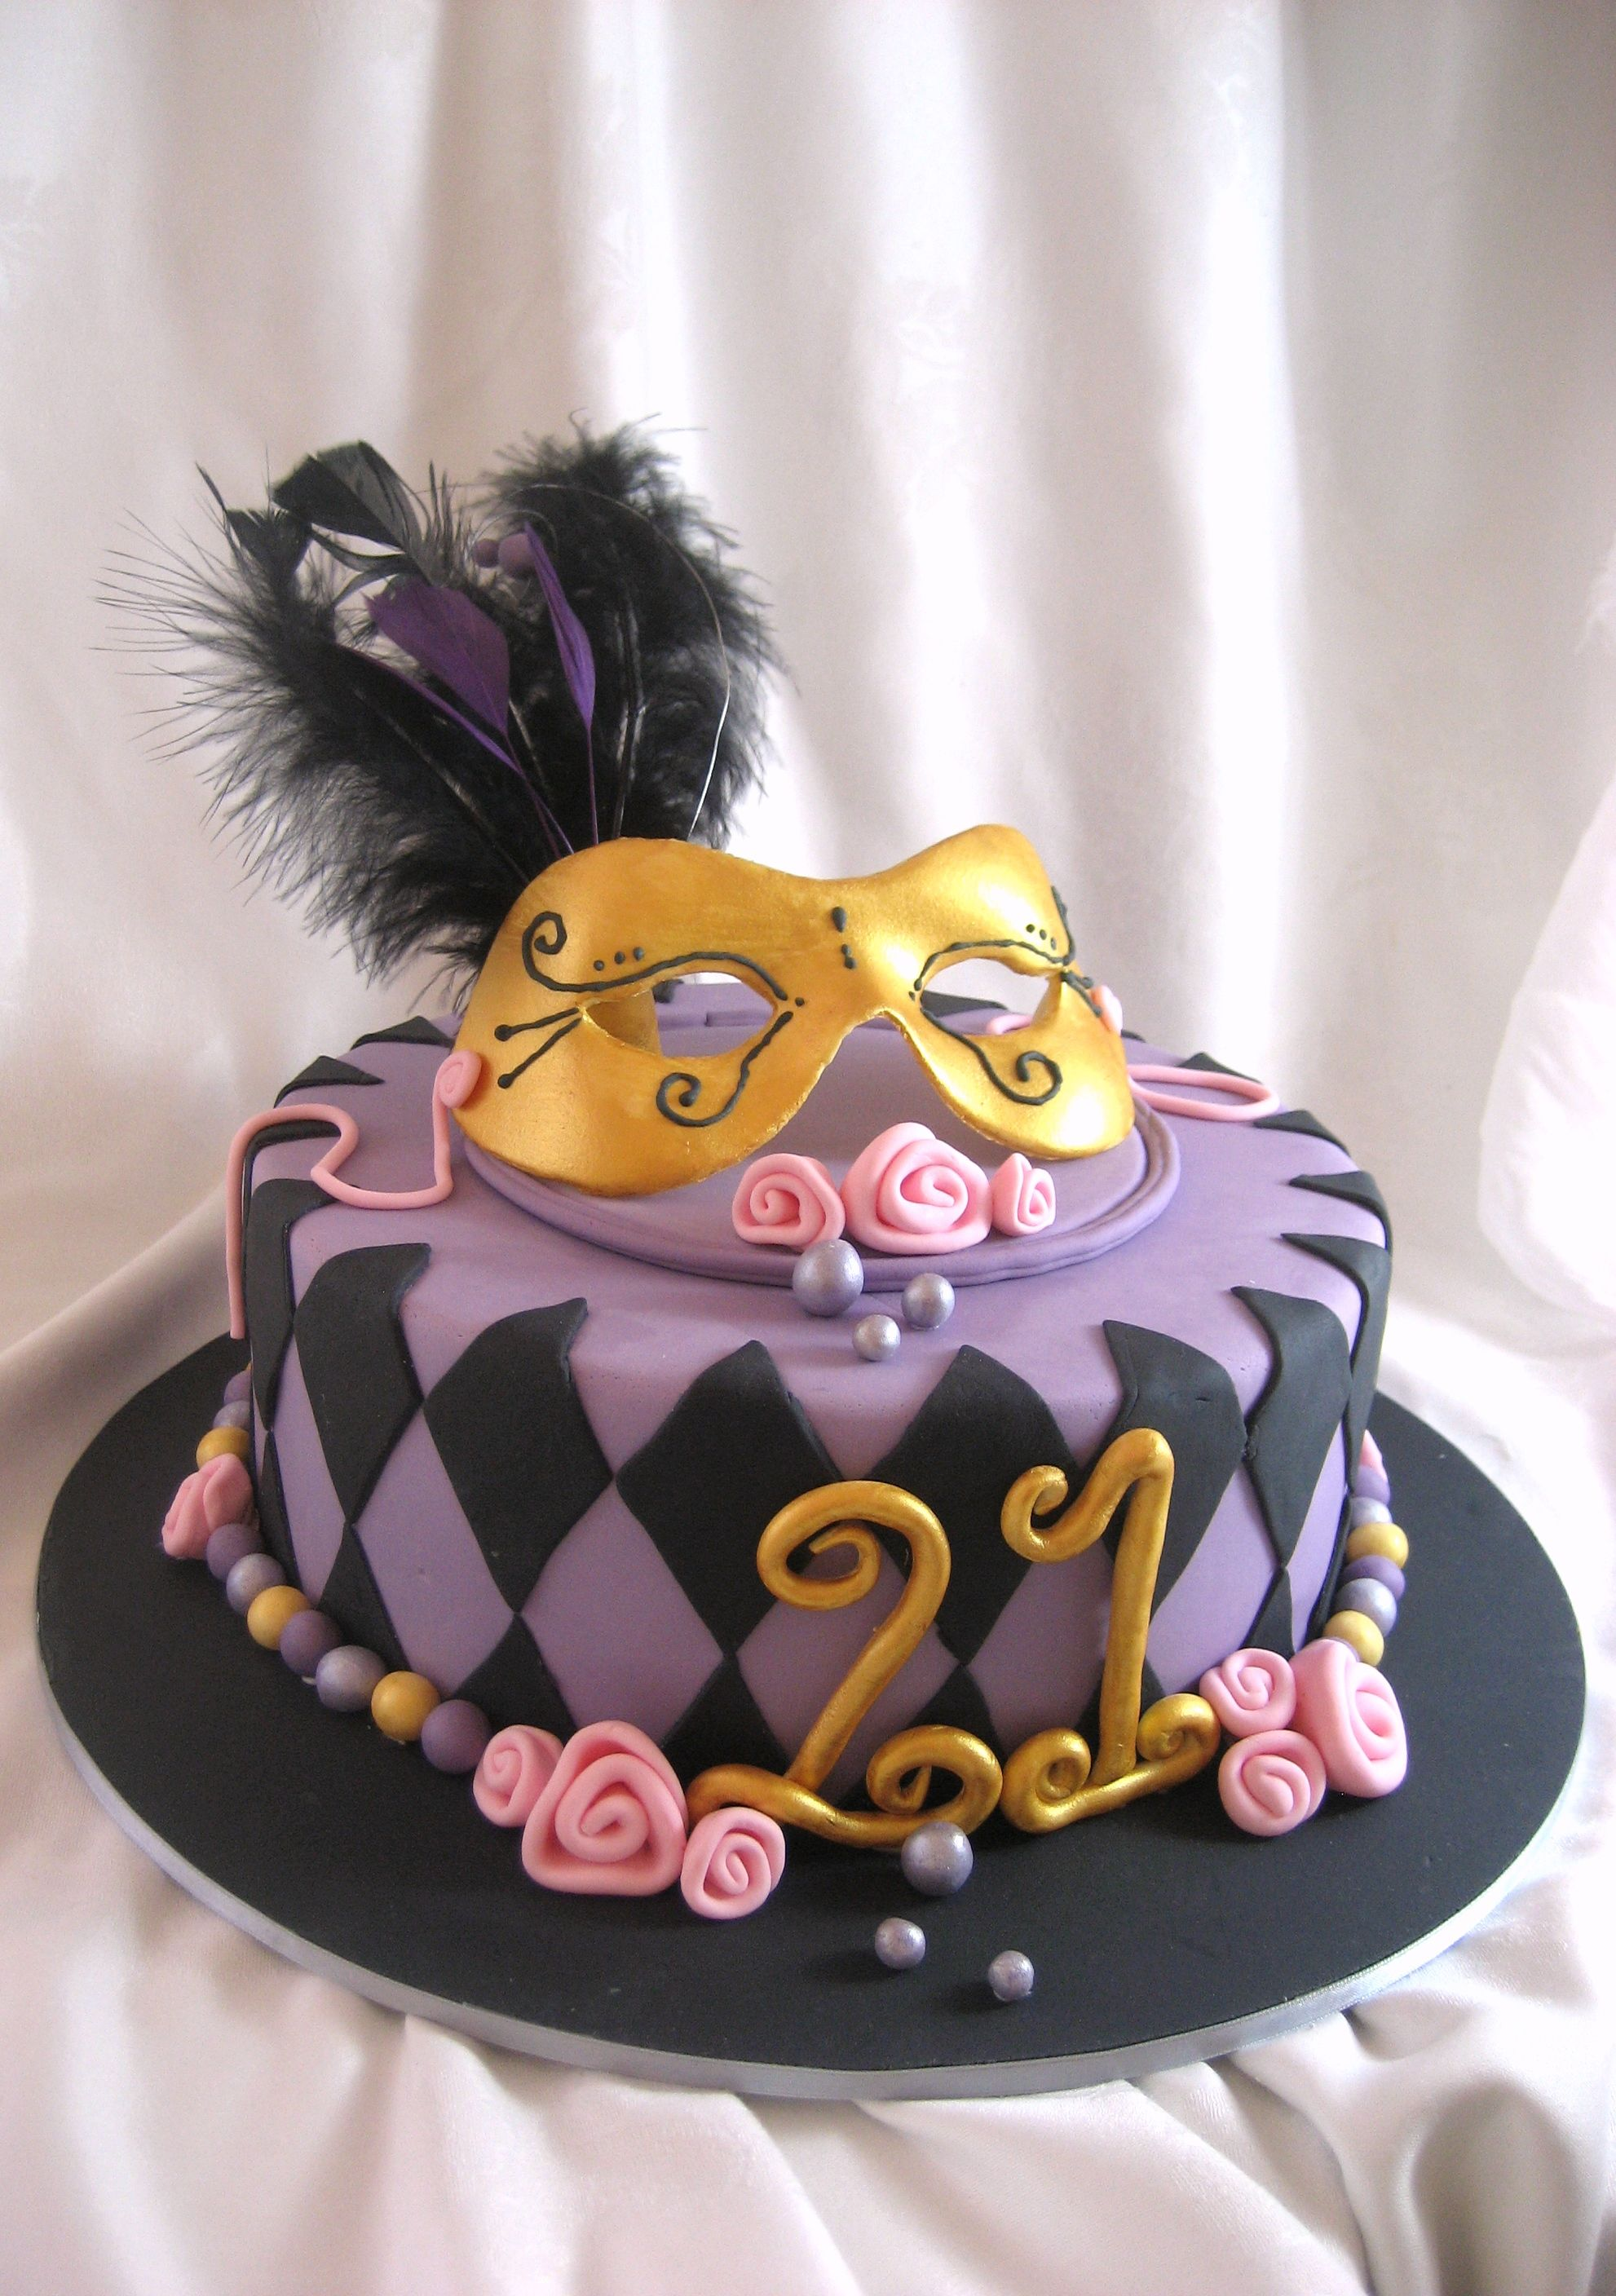 Mask Decorating Ideas Mesmerizing Masquerade Ball Cake In Purple And Black With Feathers And Mask Design Decoration